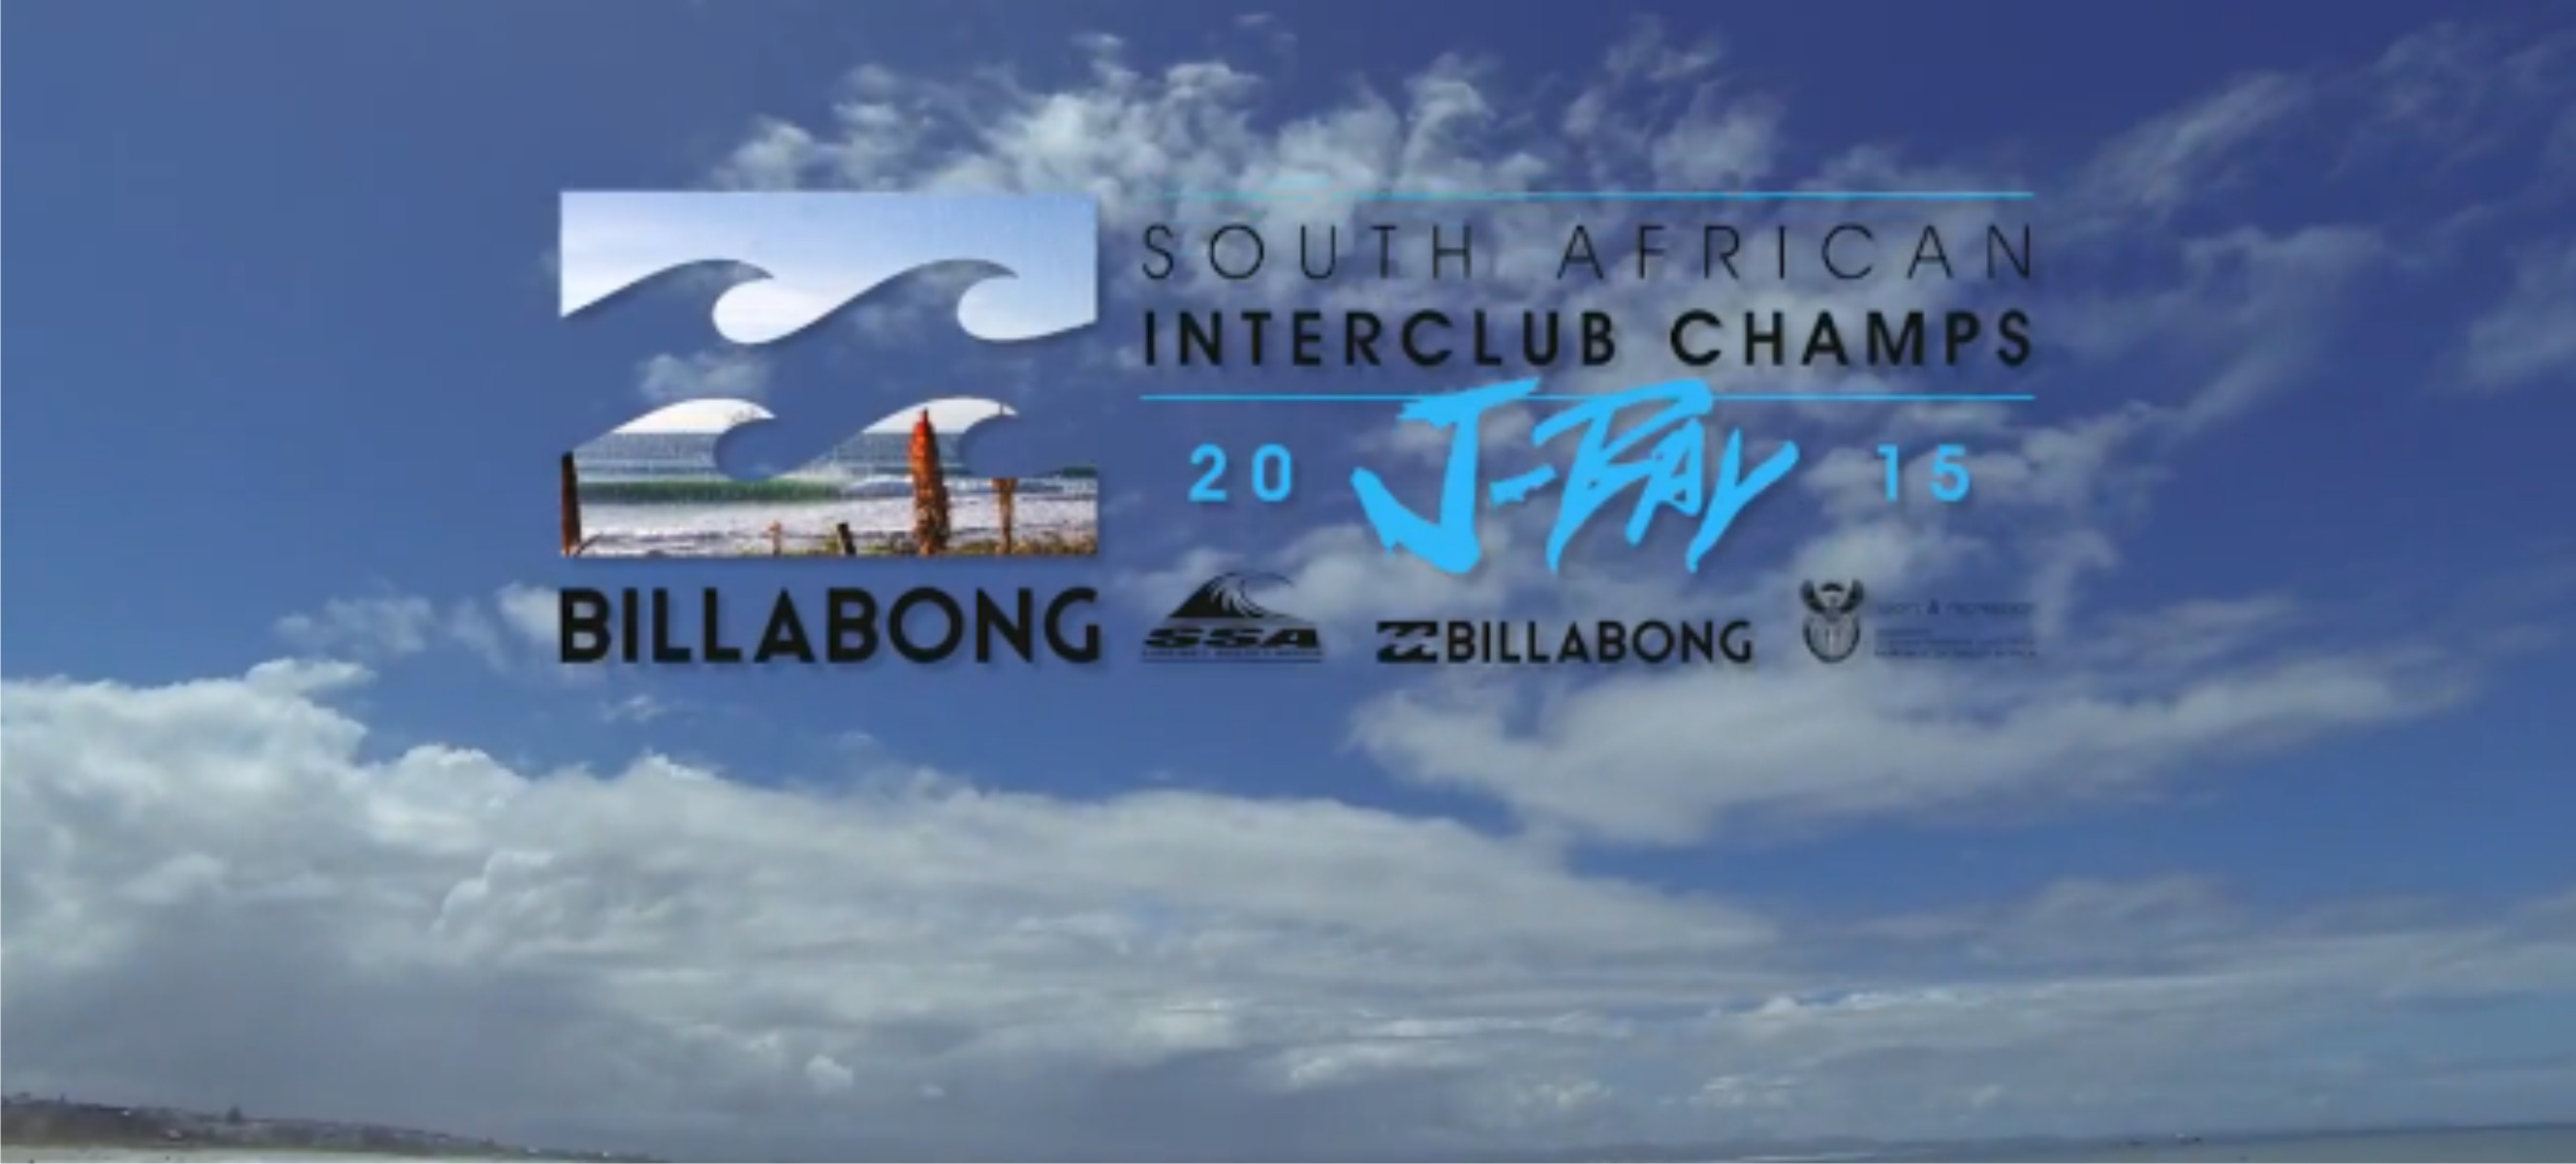 Highlights video from the Billabong 2015 South African Inter-Club Surfing Champs